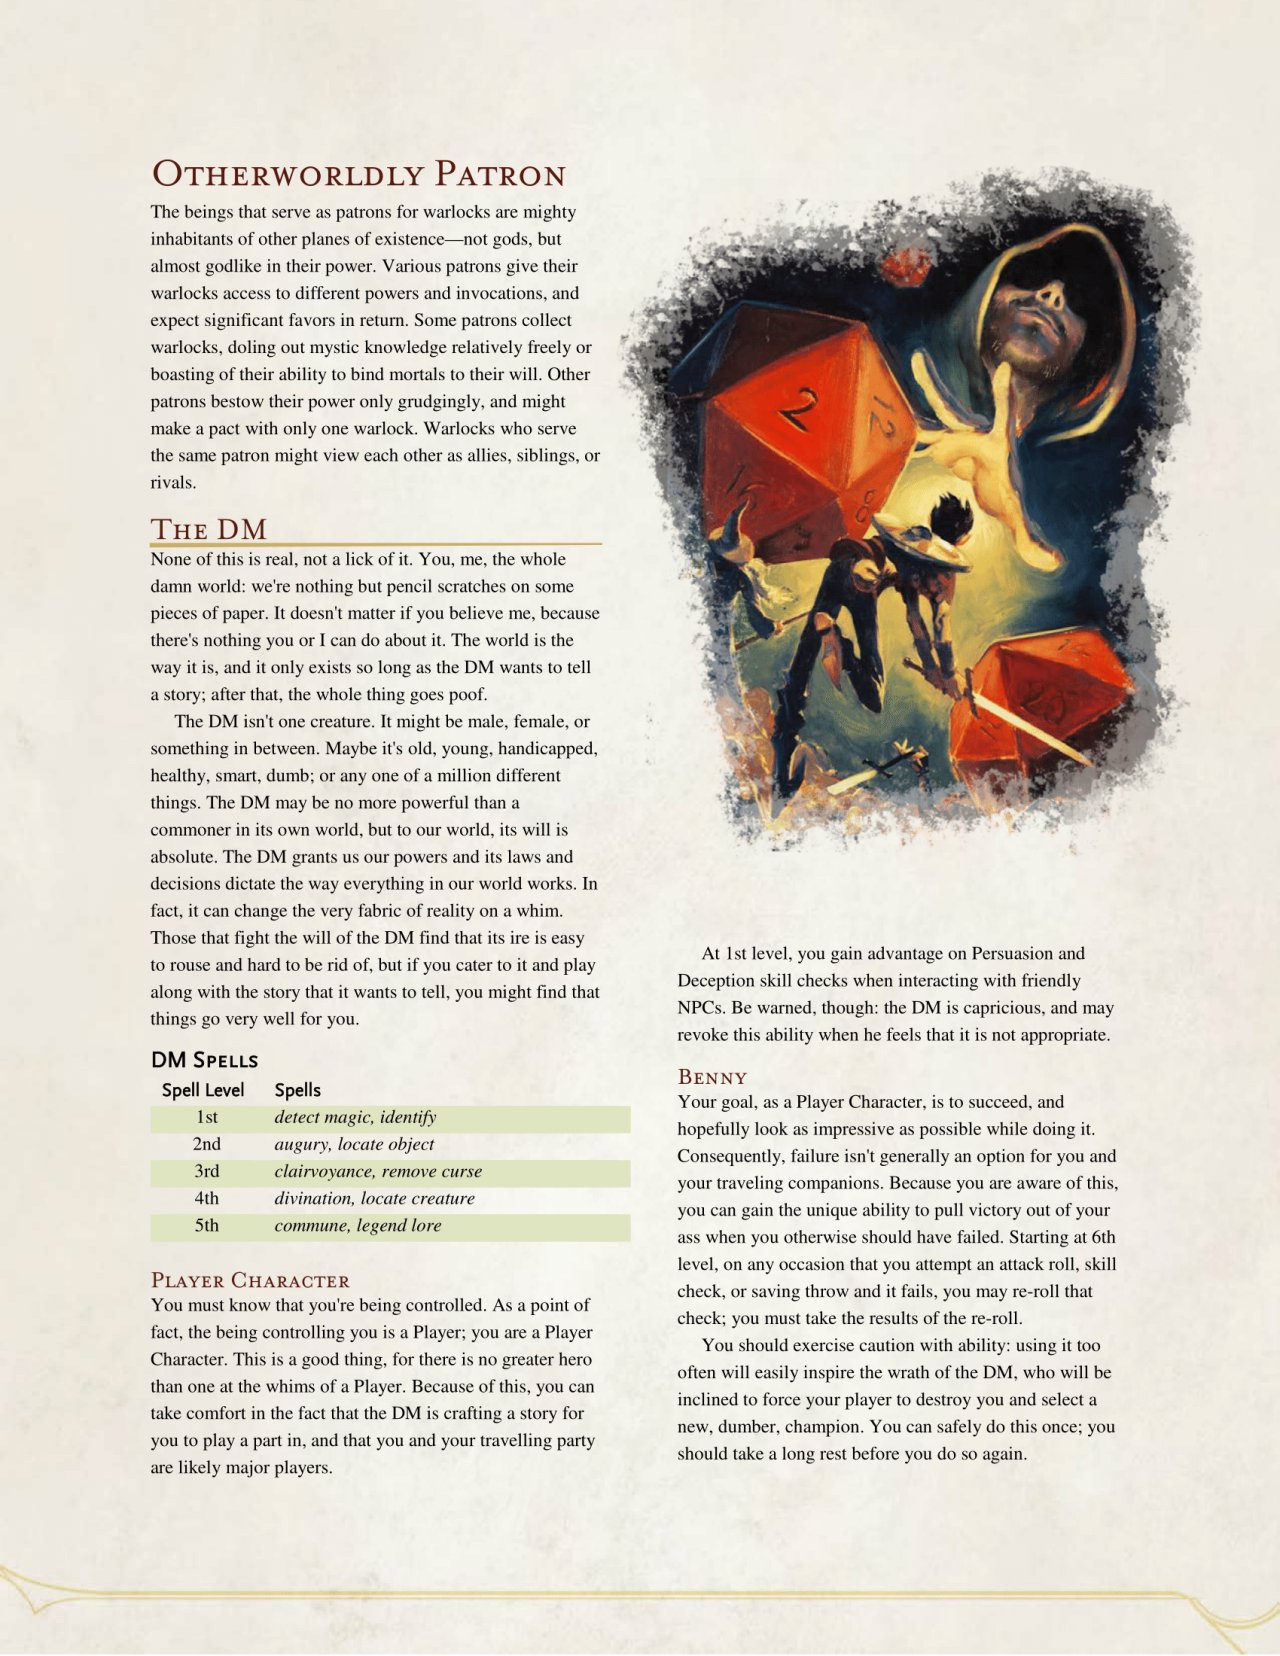 Nerd Immersion On Twitter This Is Too Funny D D 5e Warlock Patron The Dm Dnd Dnd5e 4thwallbreaking Warlockpatron 5e doesn't have spells that grant temporary spell abilities. funny d d 5e warlock patron